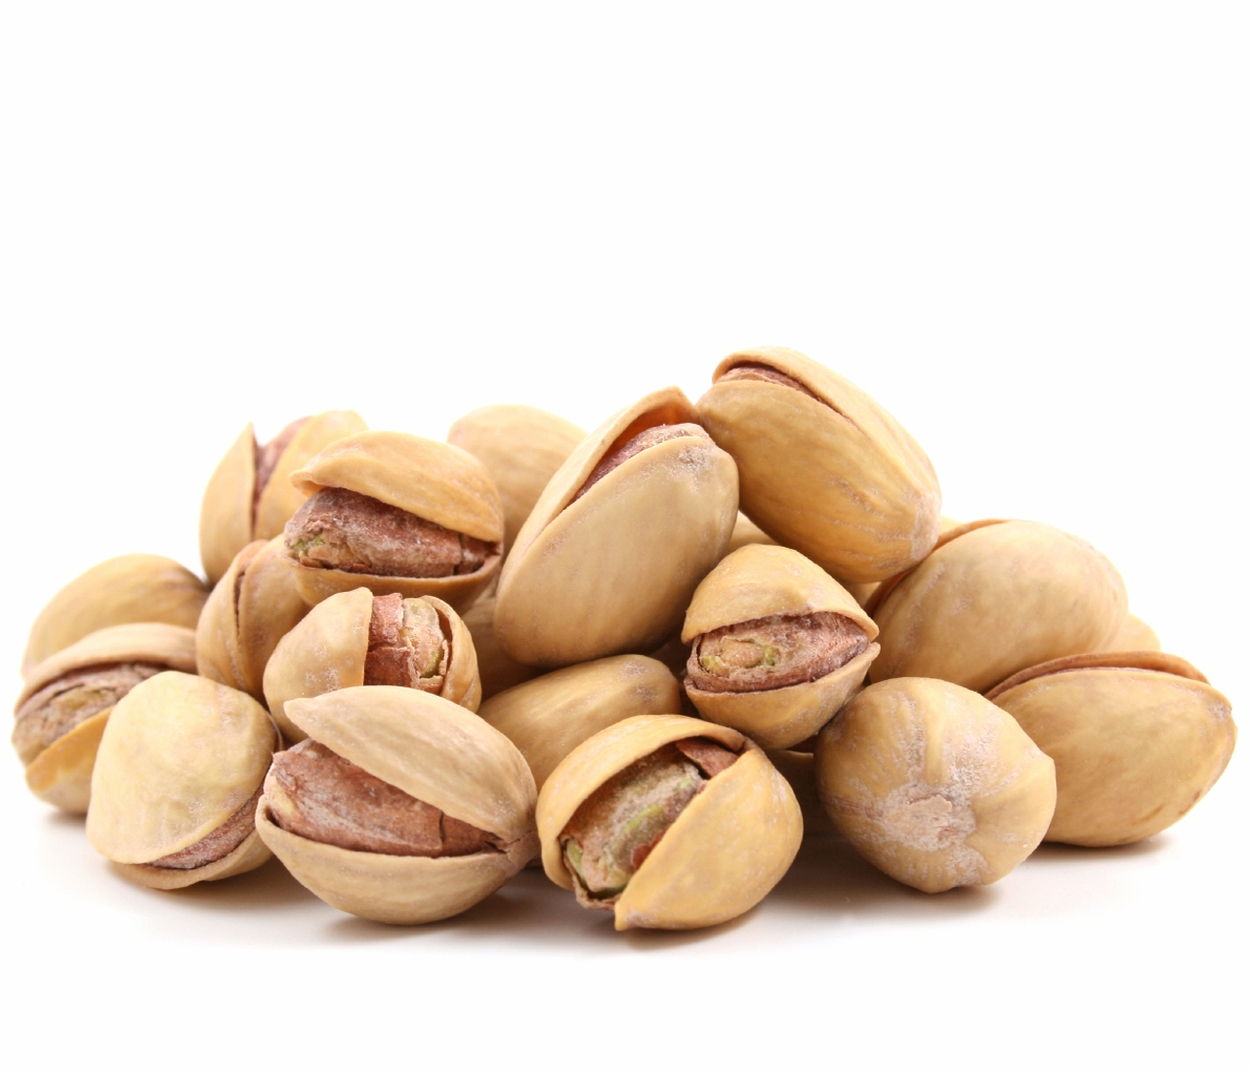 How to Roast Pistachios recommendations